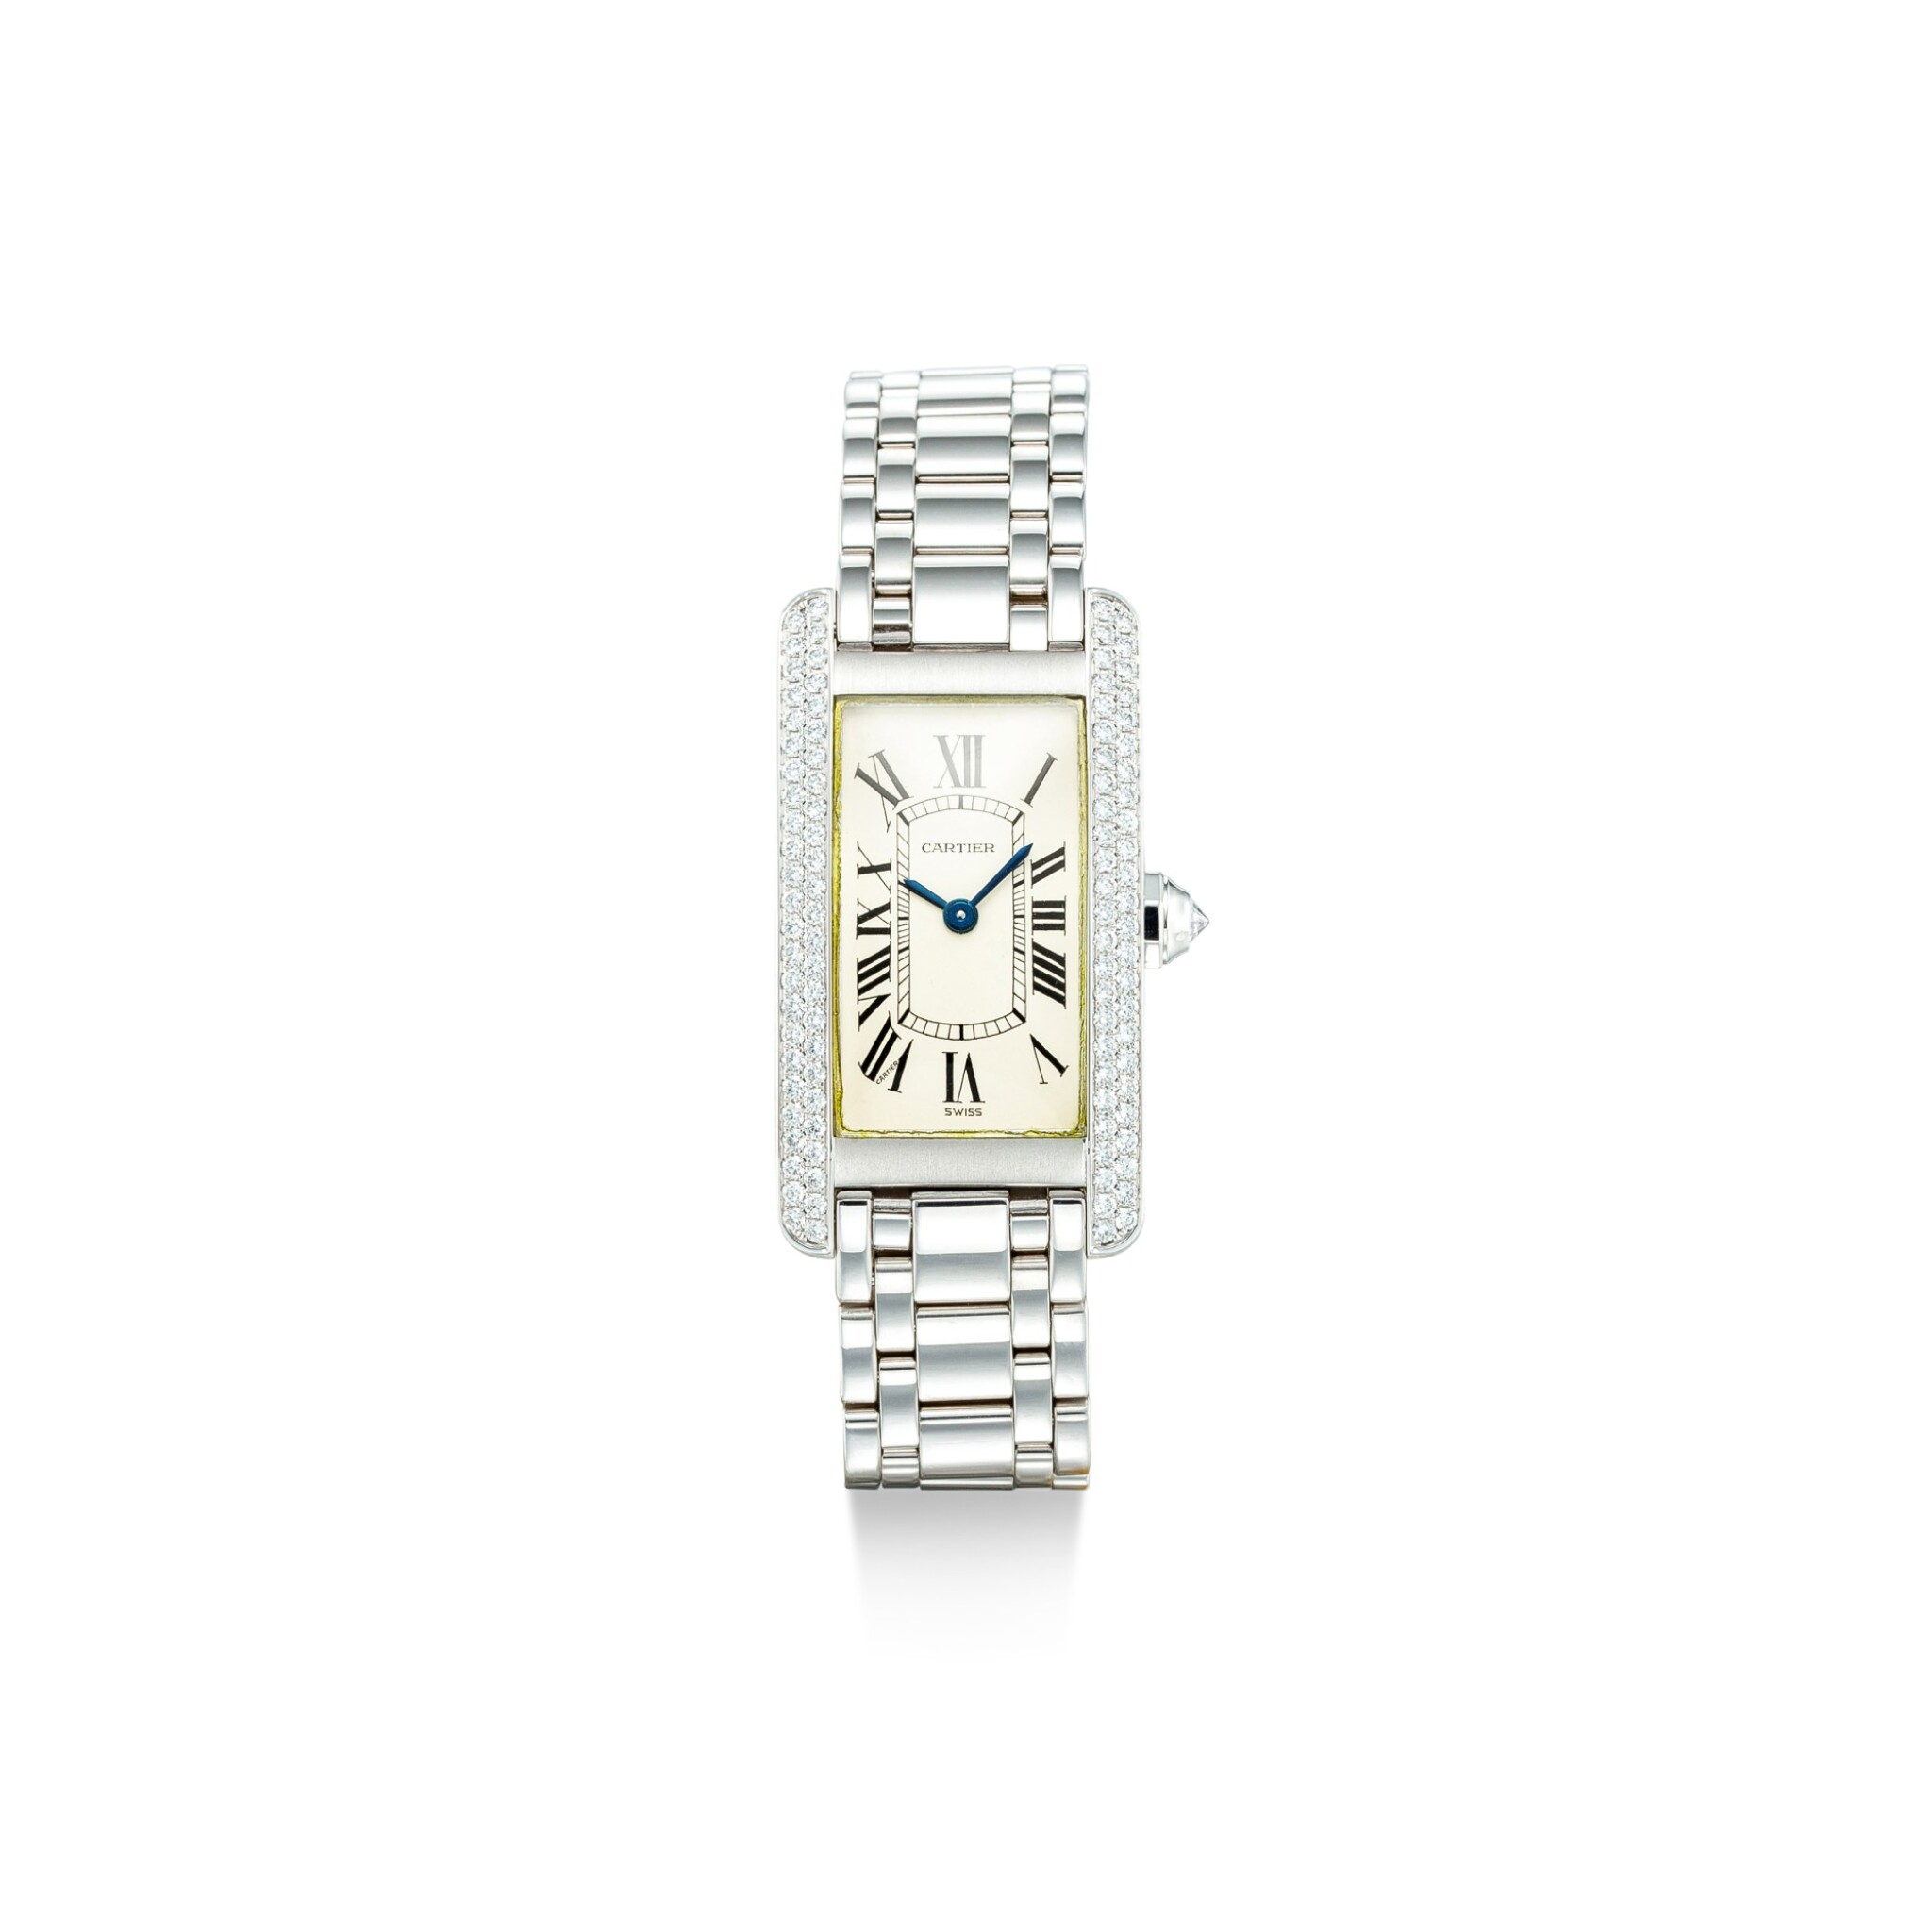 View full screen - View 1 of Lot 1108. CARTIER | TANK AMÉRICAINE, REFERENCE 1713, A WHITE GOLD AND DIAMOND-SET WRISTWATCH WITH BRACELET, CIRCA 2000.